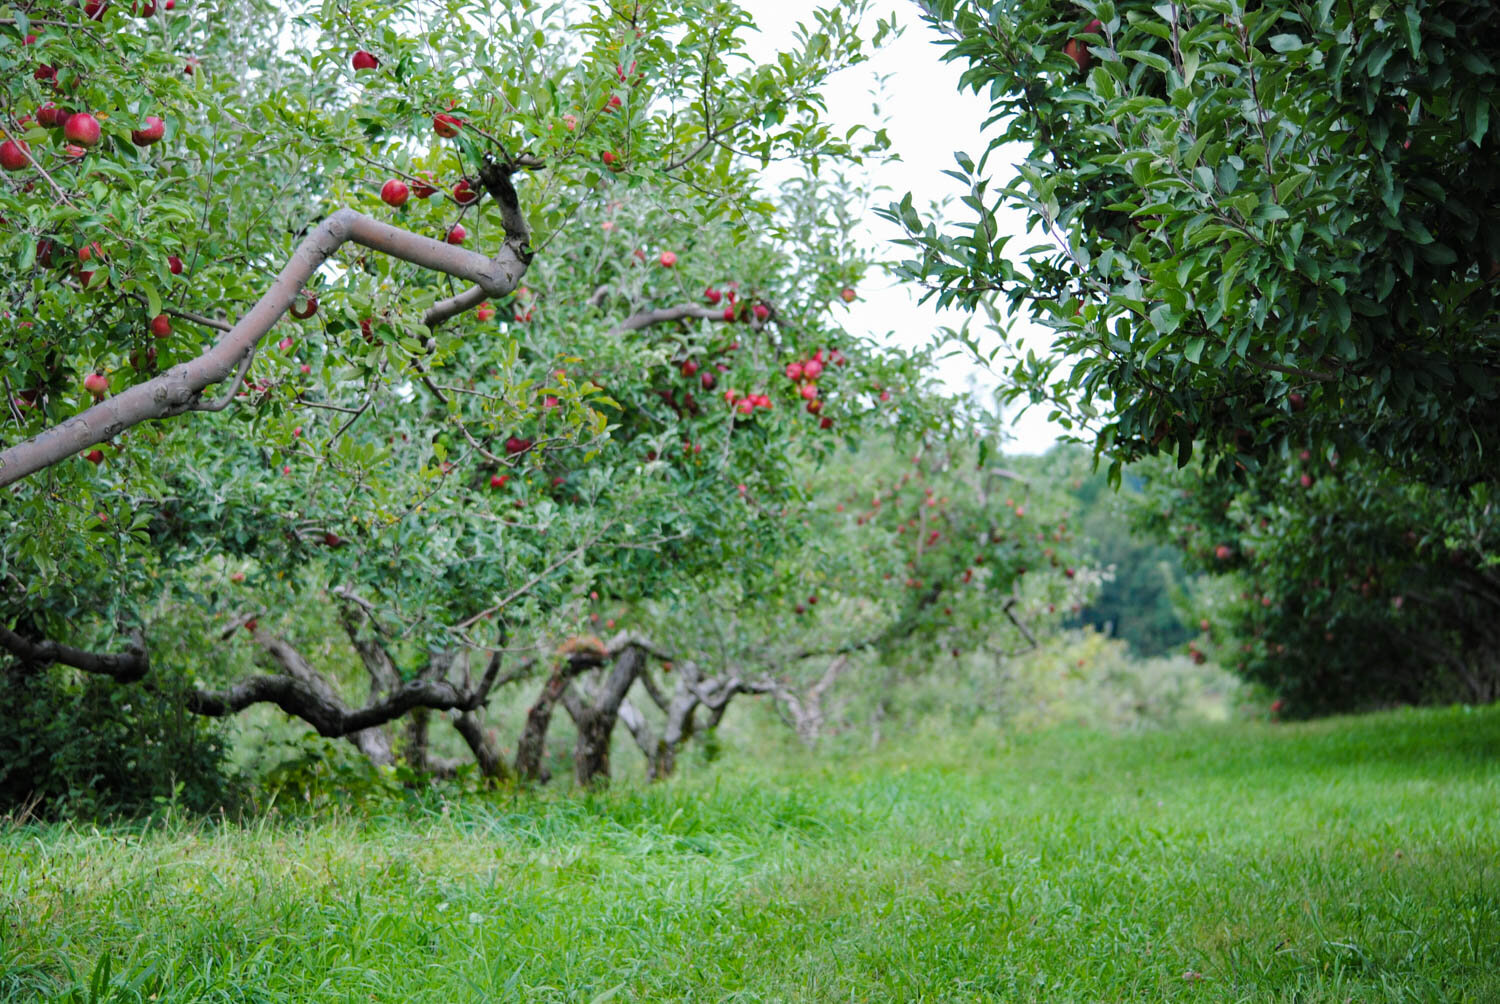 'Jonathan' apples in line and ready for harvest